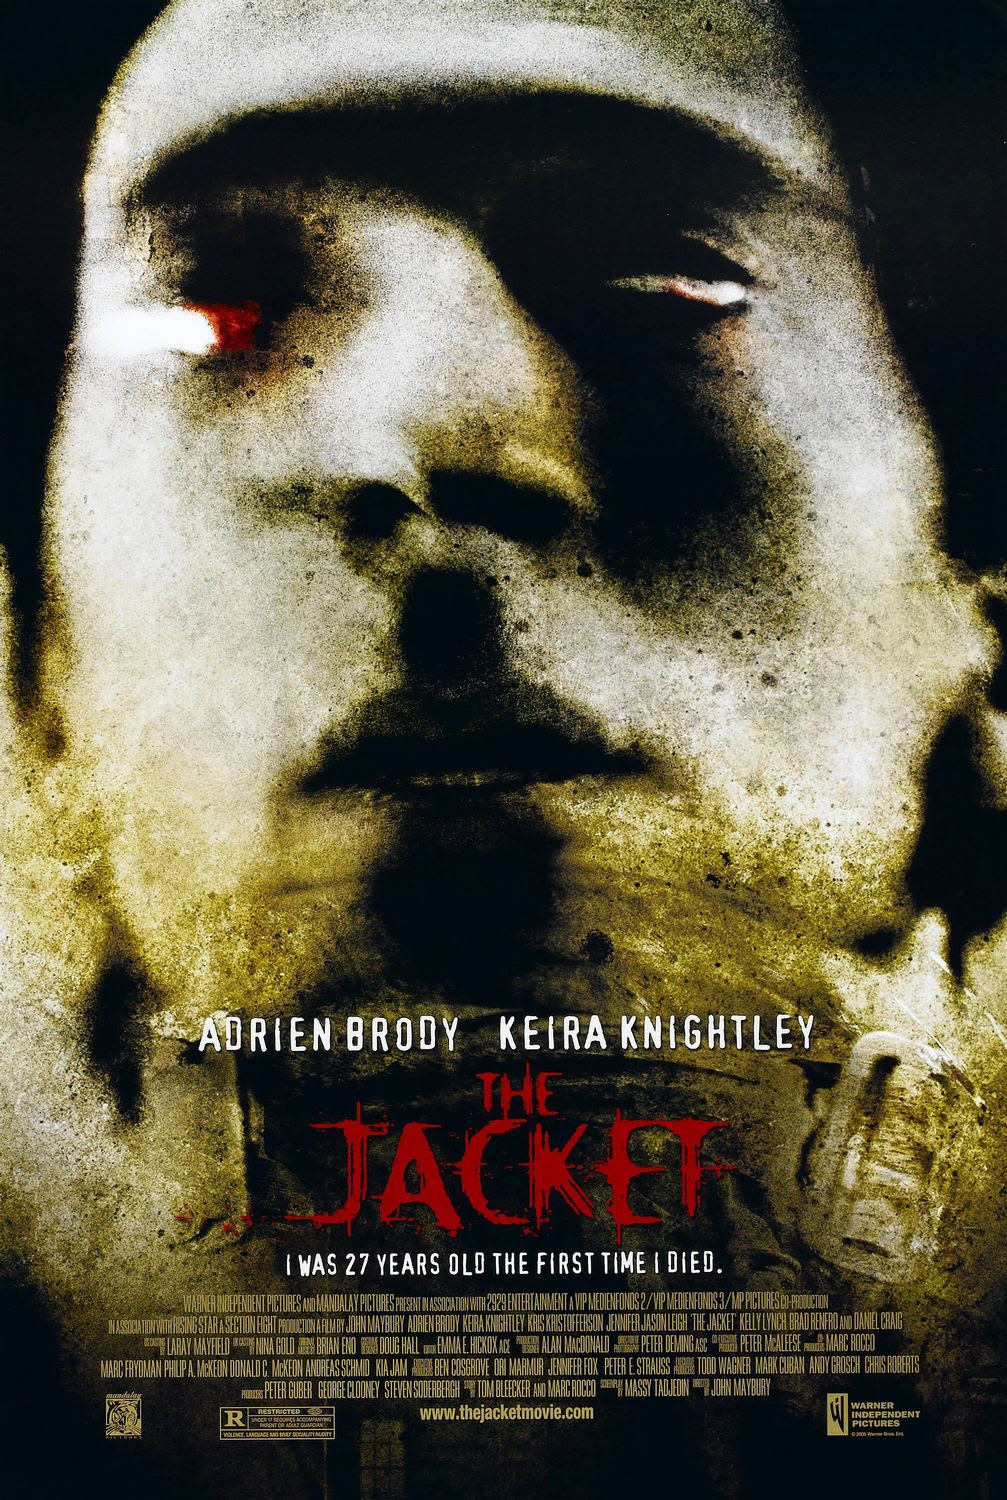 Risultati immagini per the jacket movie poster